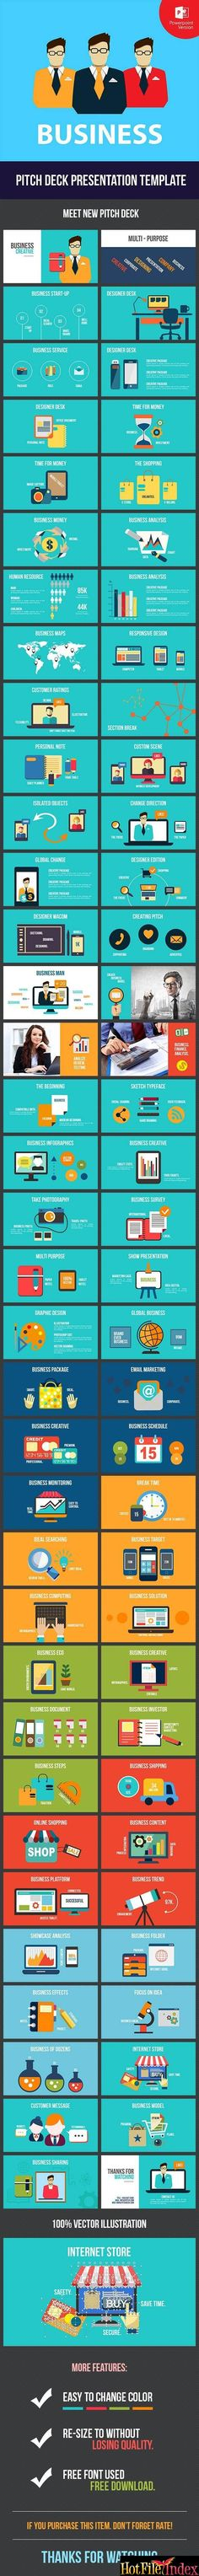 25 Best Power Point Images On Pinterest Powerpoint Presentation